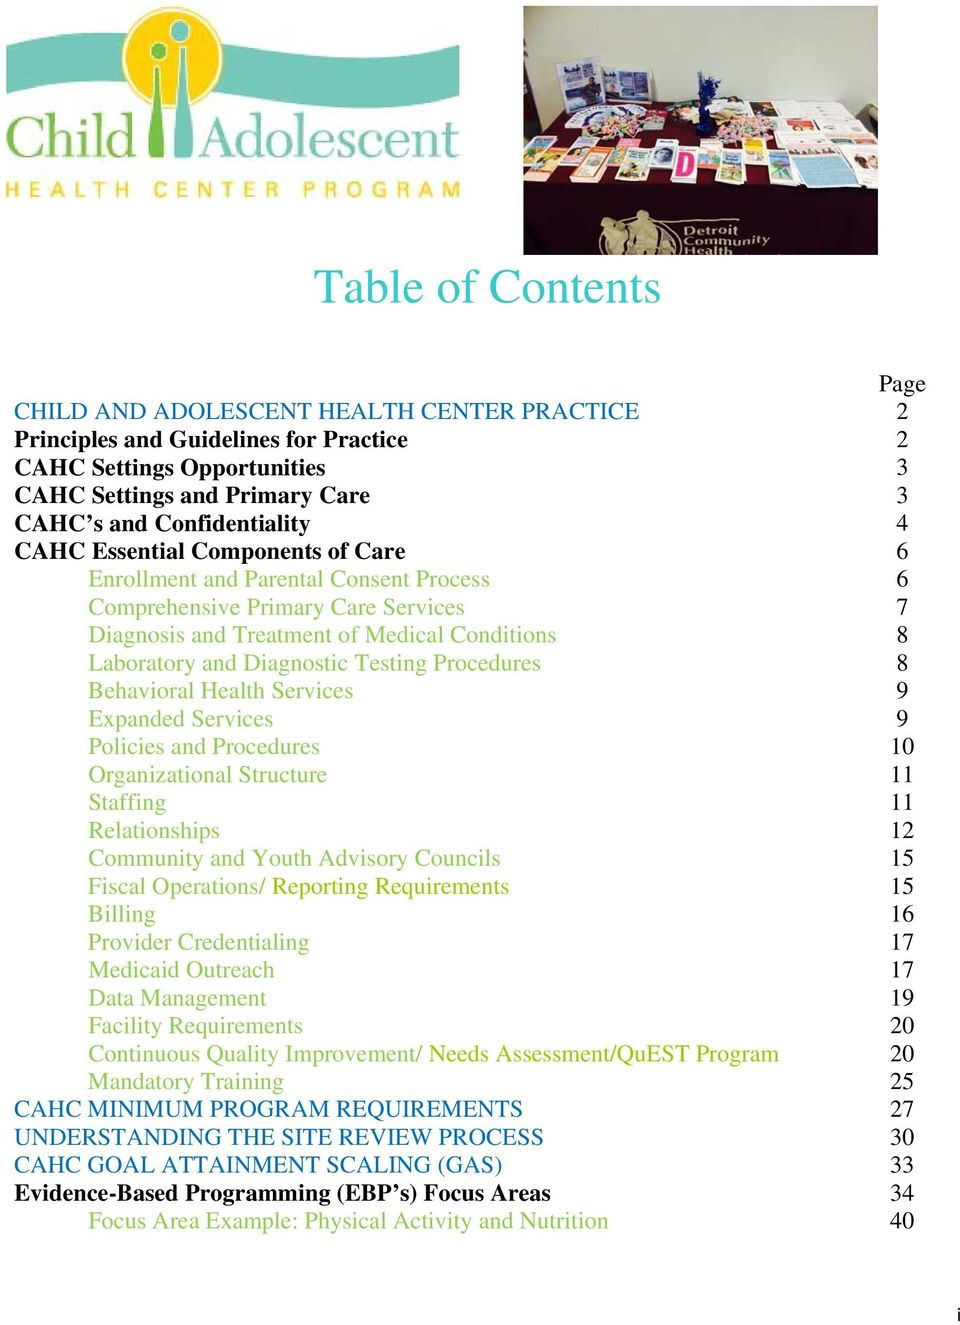 Procedures 8 Behavioral Health Services 9 Expanded Services 9 Policies and Procedures 10 Organizational Structure 11 Staffing 11 Relationships 12 Community and Youth Advisory Councils 15 Fiscal